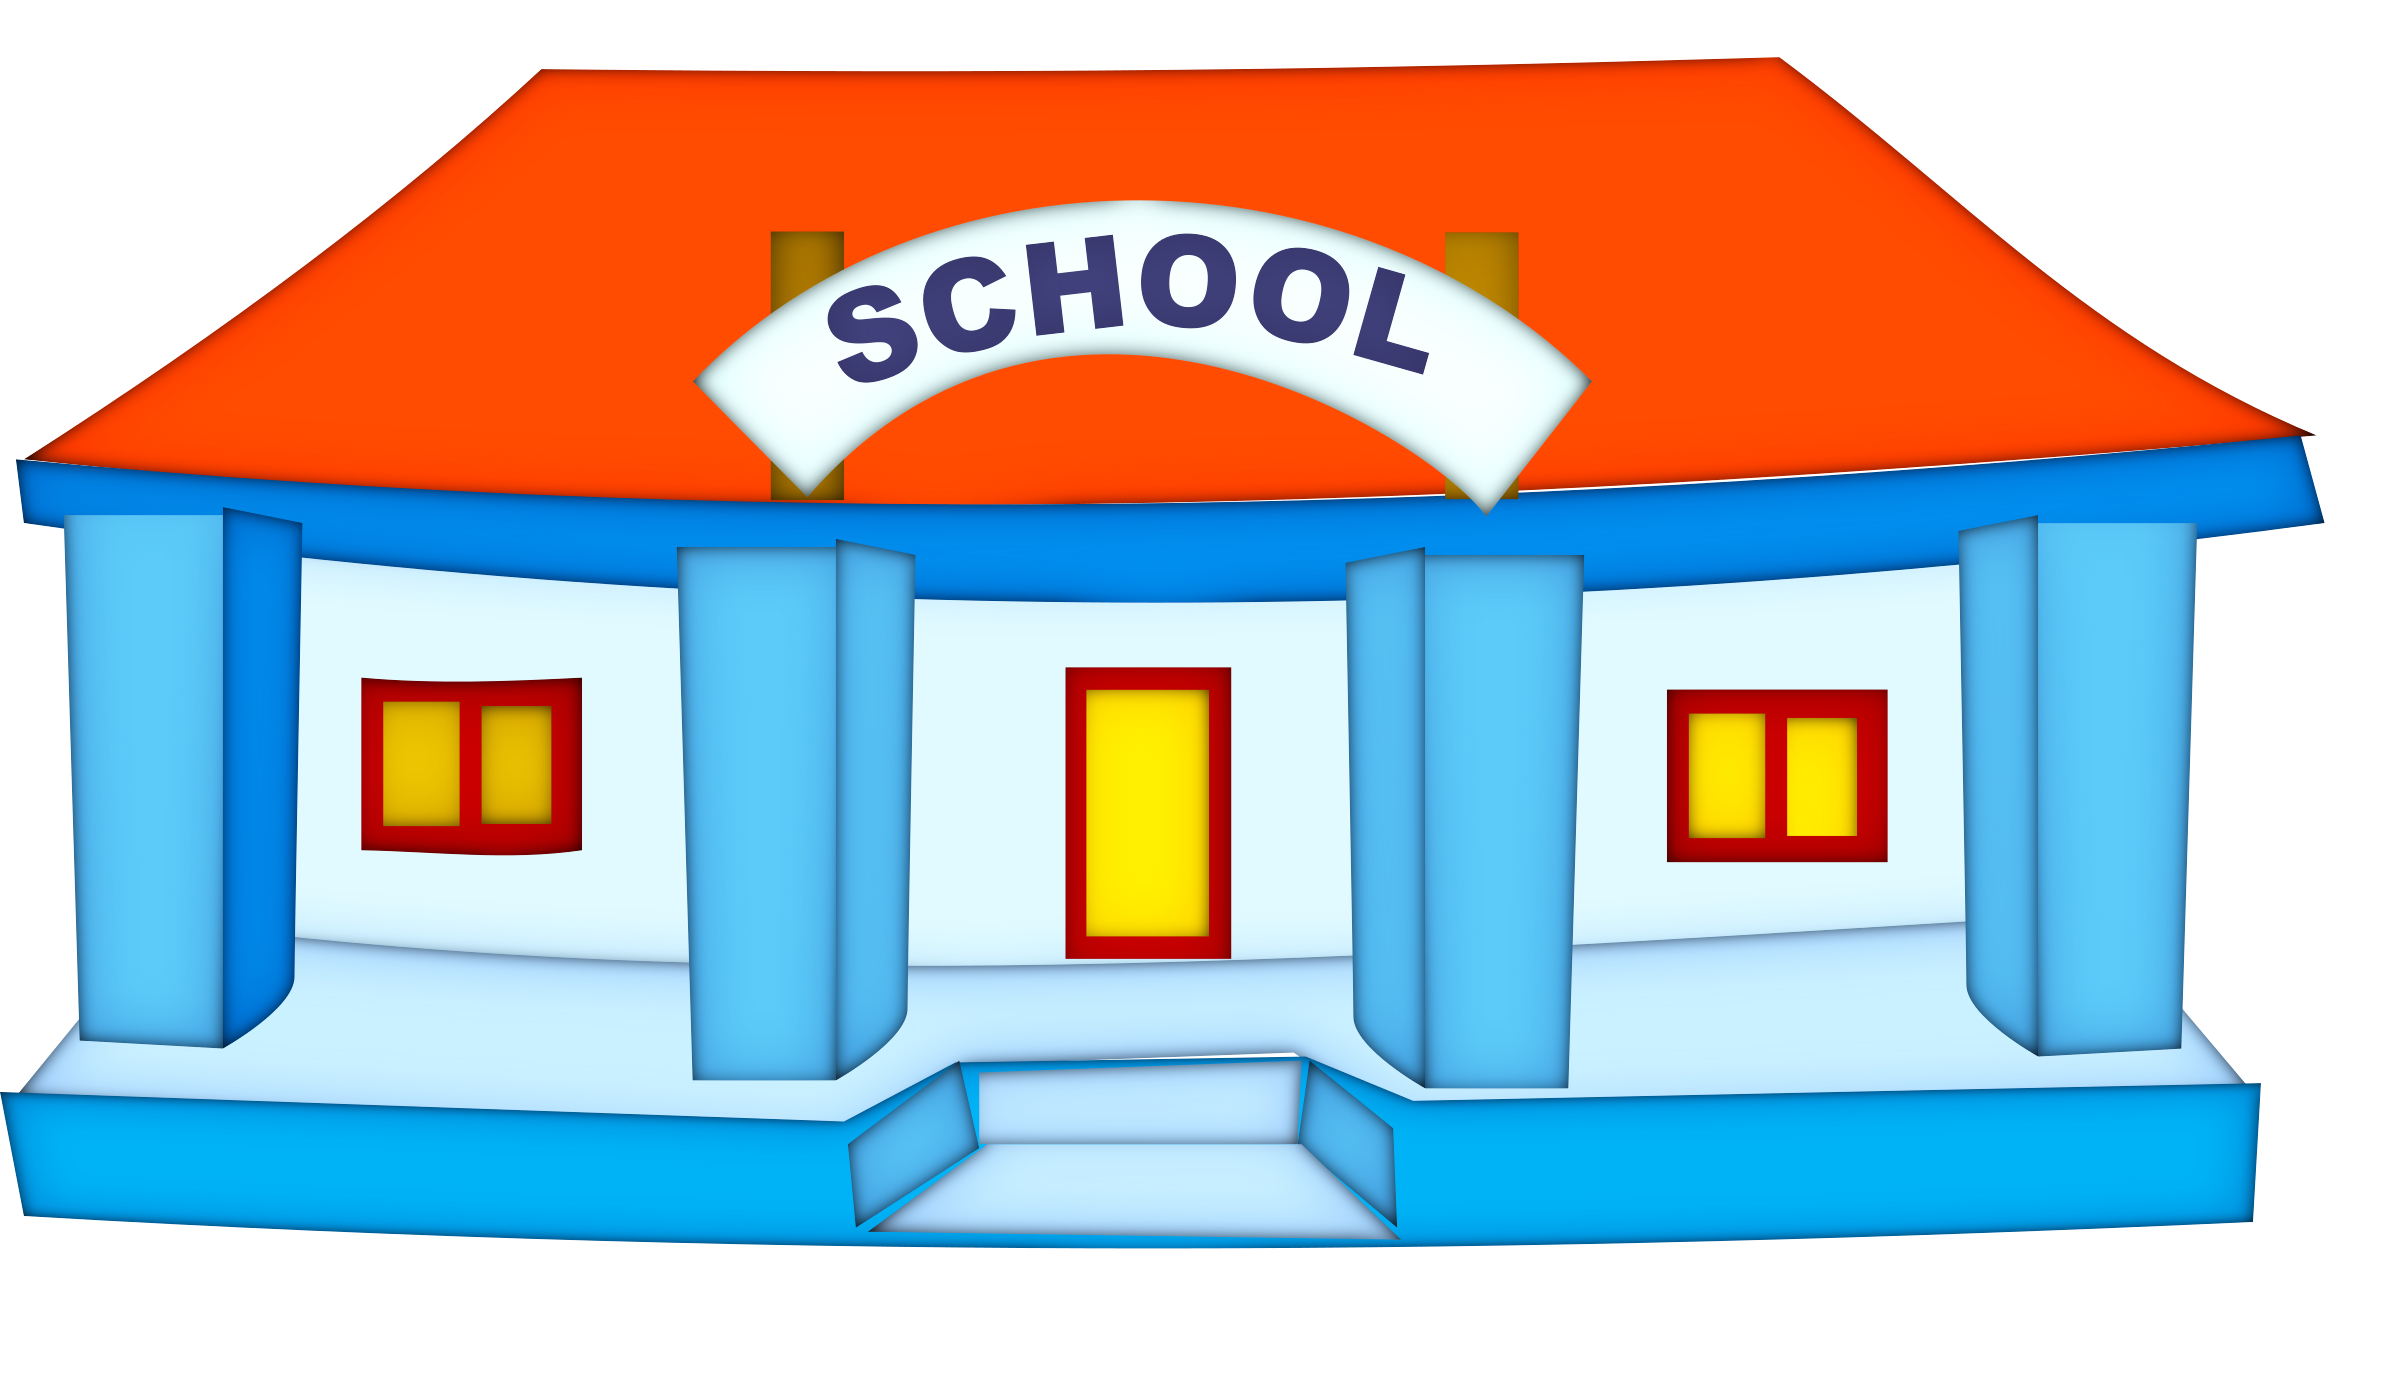 I clipart school vector black and white stock Clipart - school-building vector black and white stock